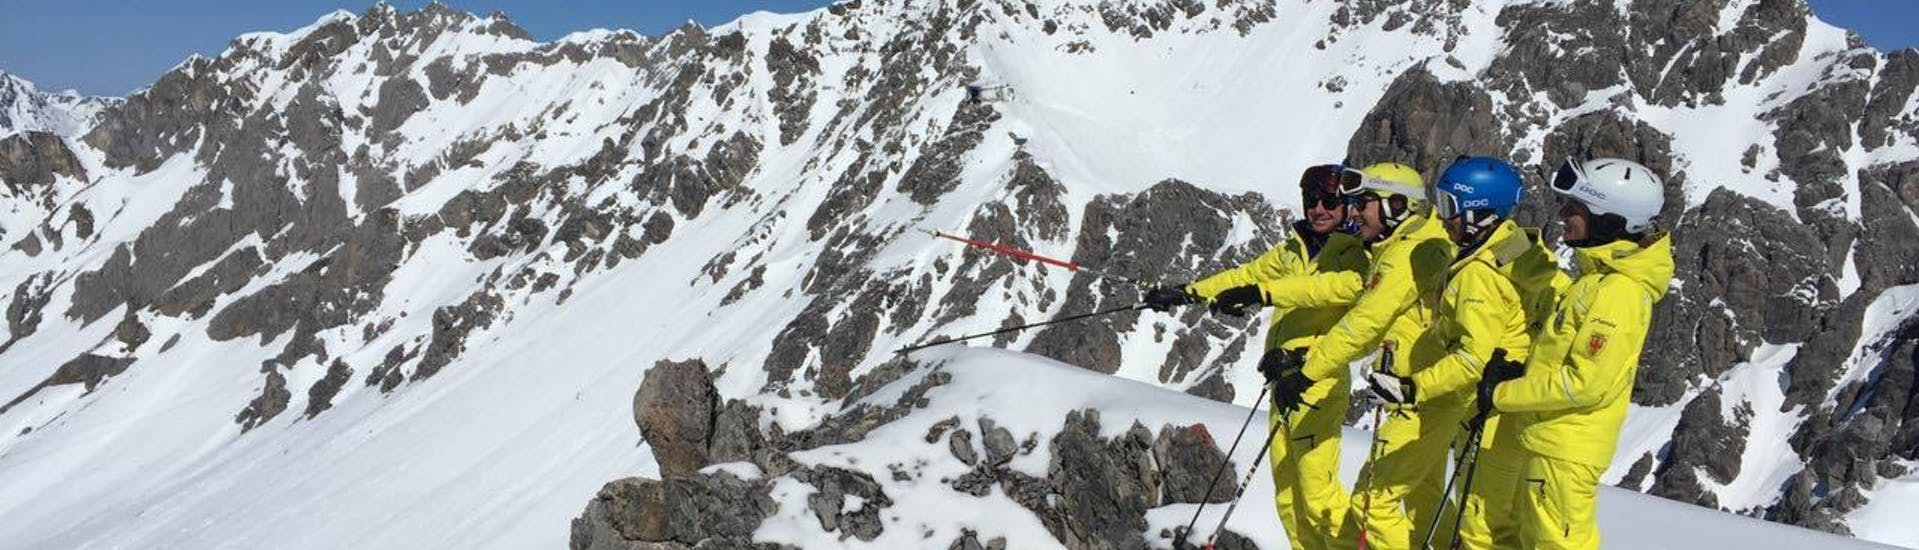 Adult Ski Lessons for All Levels with Scuola Sci 2000 Selva - Hero image